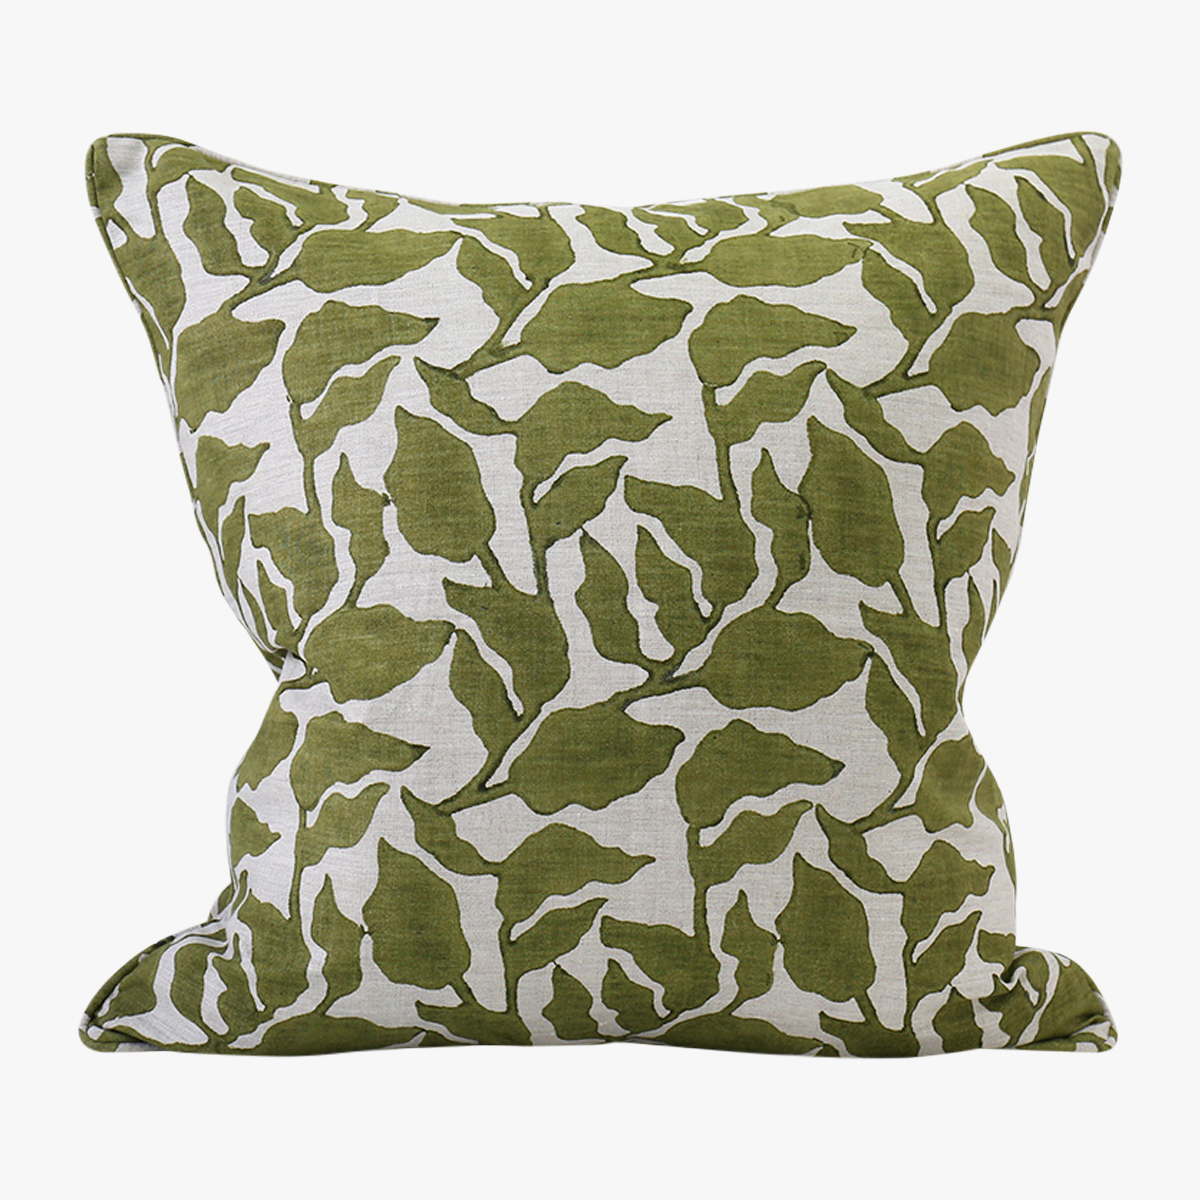 Flores-Moss-Pillow-Cover.jpg